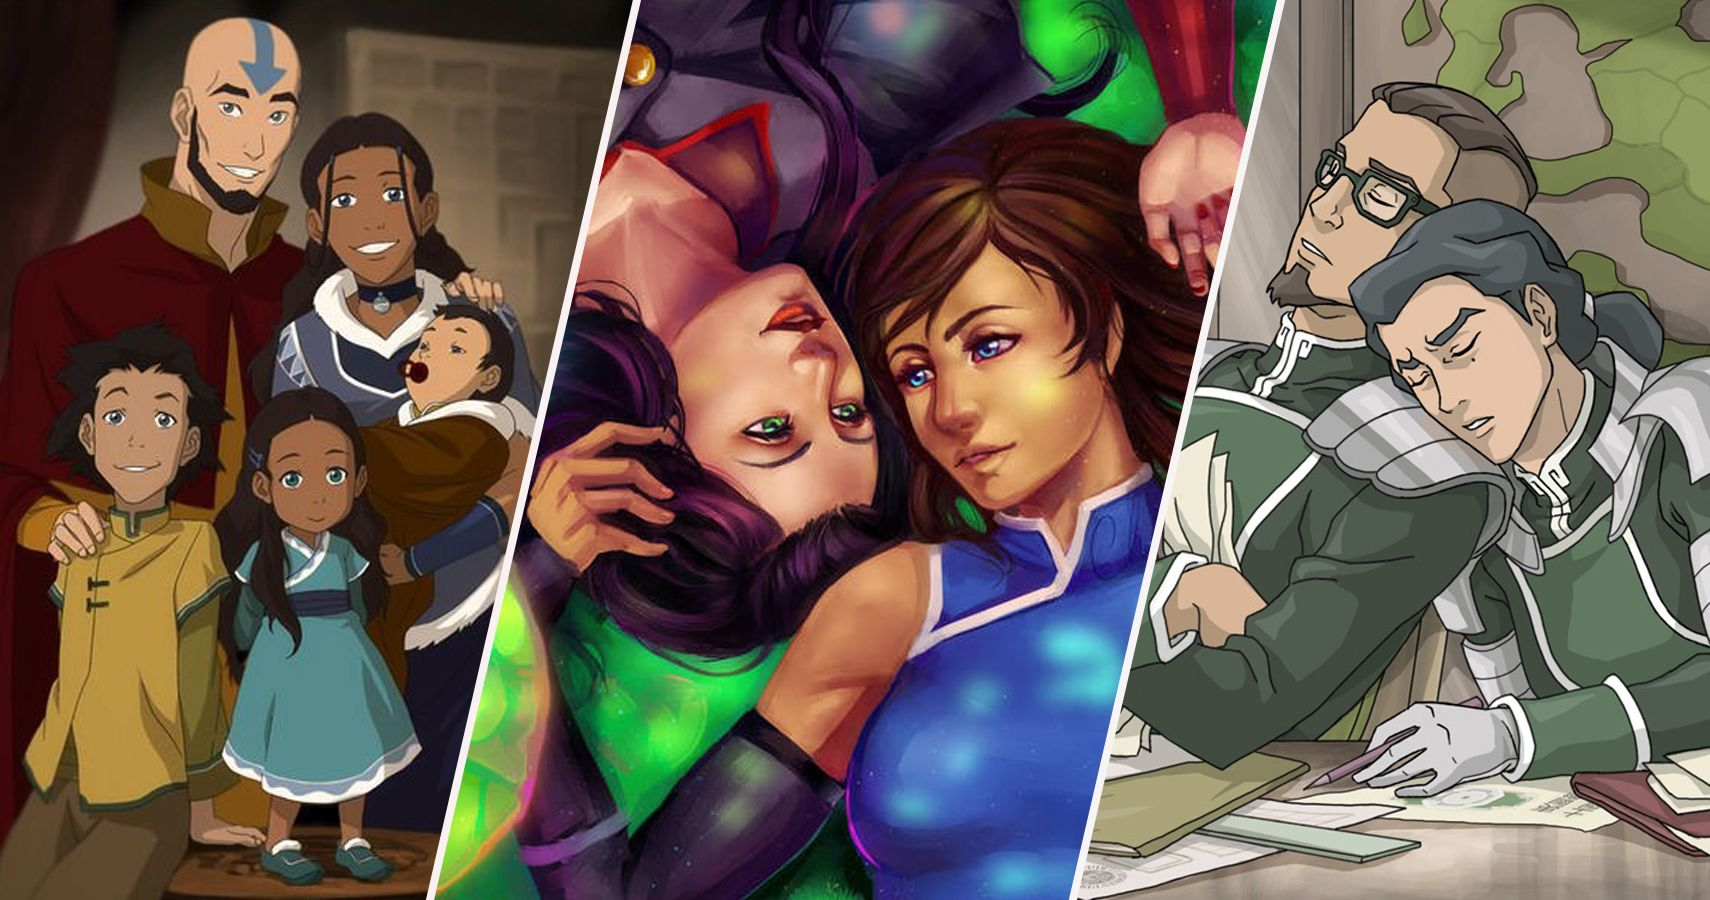 10 Couples That Hurt Avatar The Last Airbender And Legend Of Korra